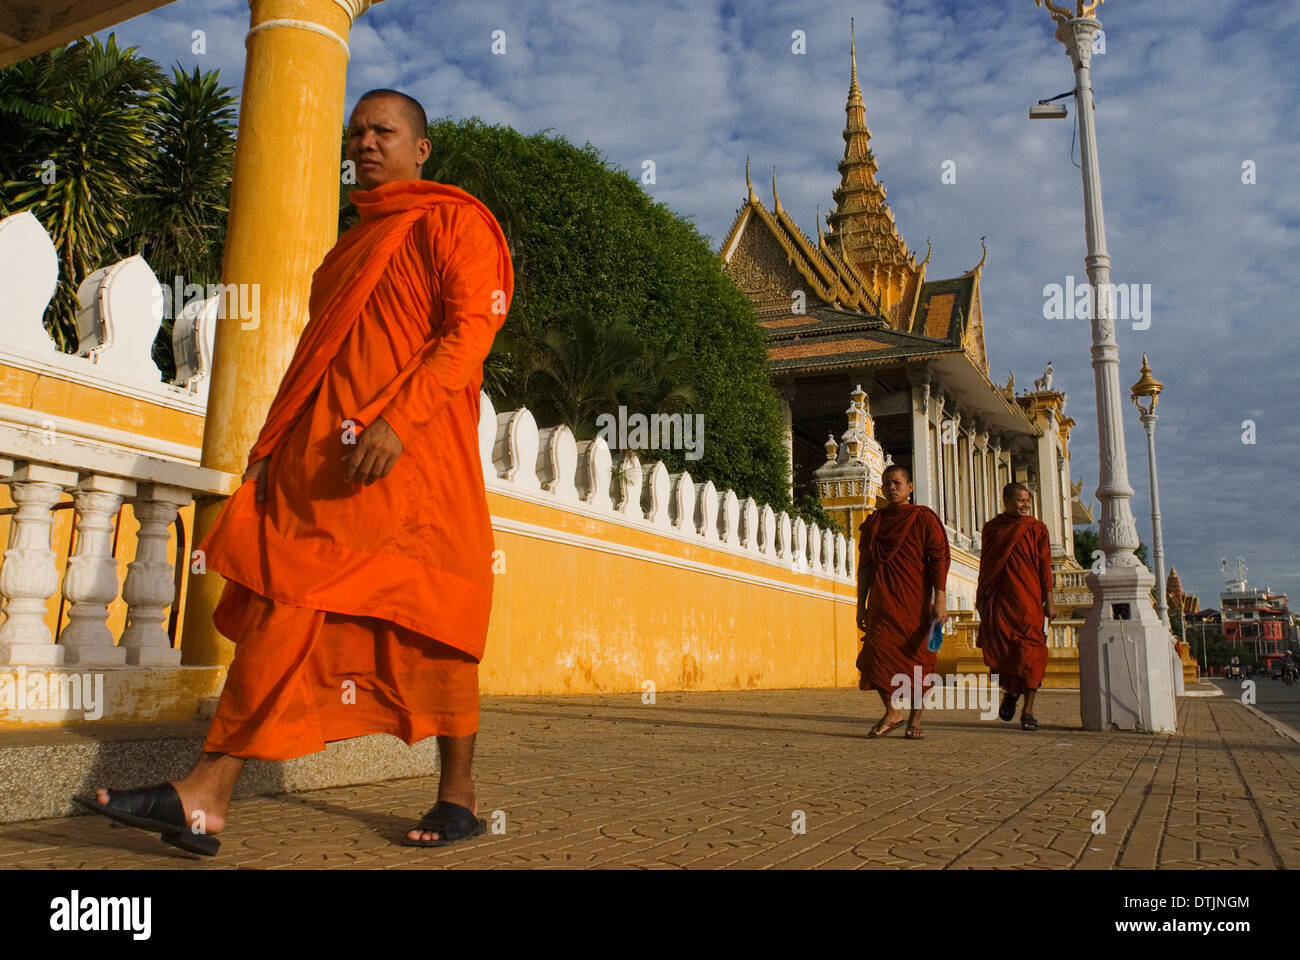 Monks walk outside the Royal Palace. Phnom Penh. Gleaming in gold, the Royal Palace is one of Phnom Penh?s most splendid archite - Stock Image